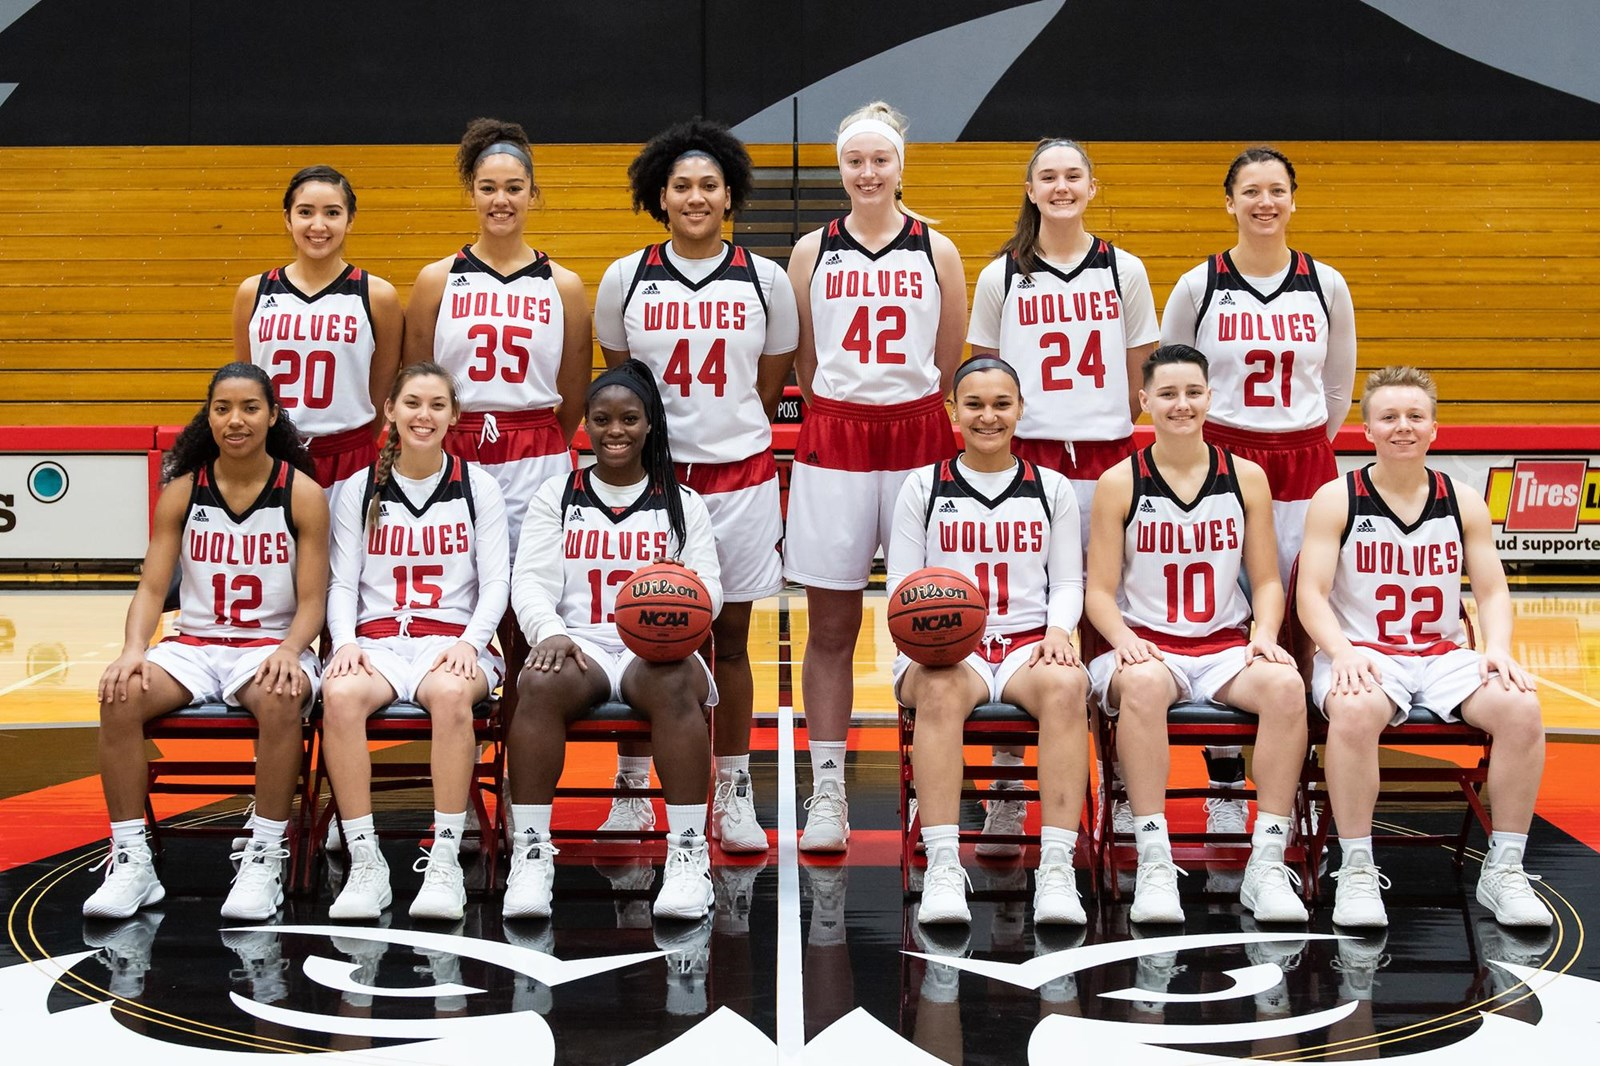 brand new 3d907 911a2 2018-19 Women's Basketball Roster - Western Oregon ...